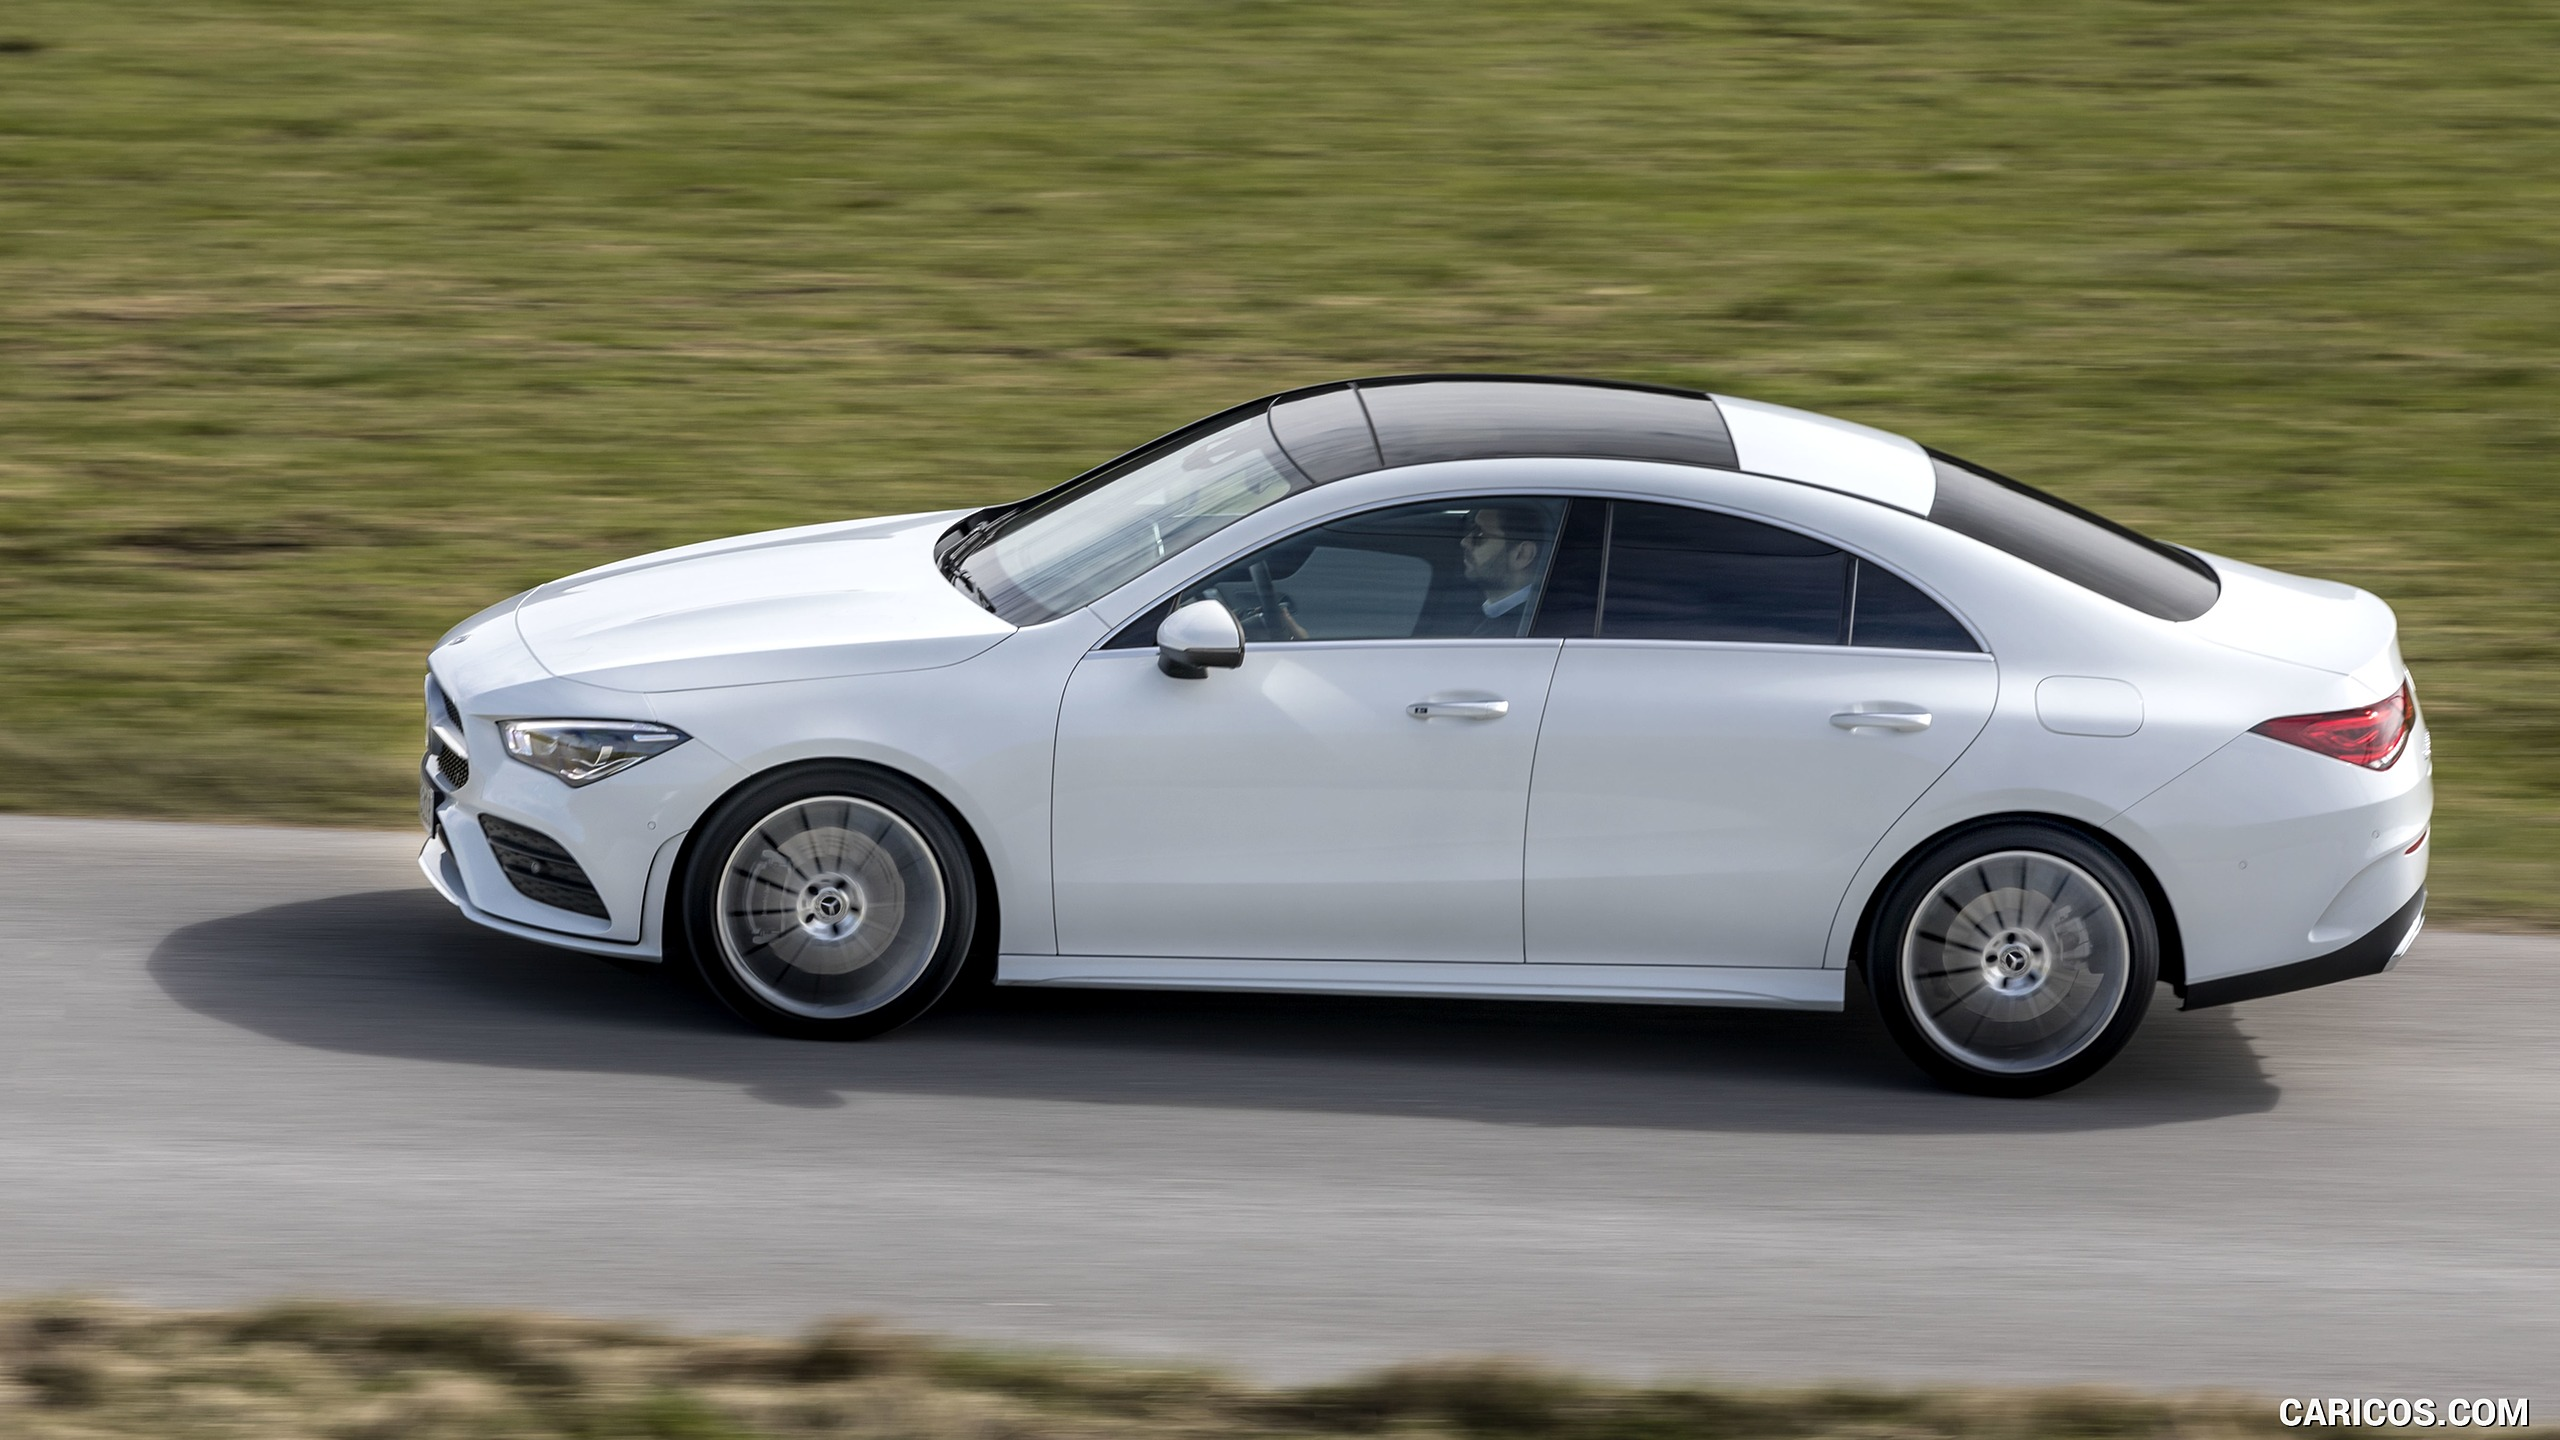 2020 Mercedes Benz CLA 220 d Coupe AMG Line Color Digital White 2560x1440